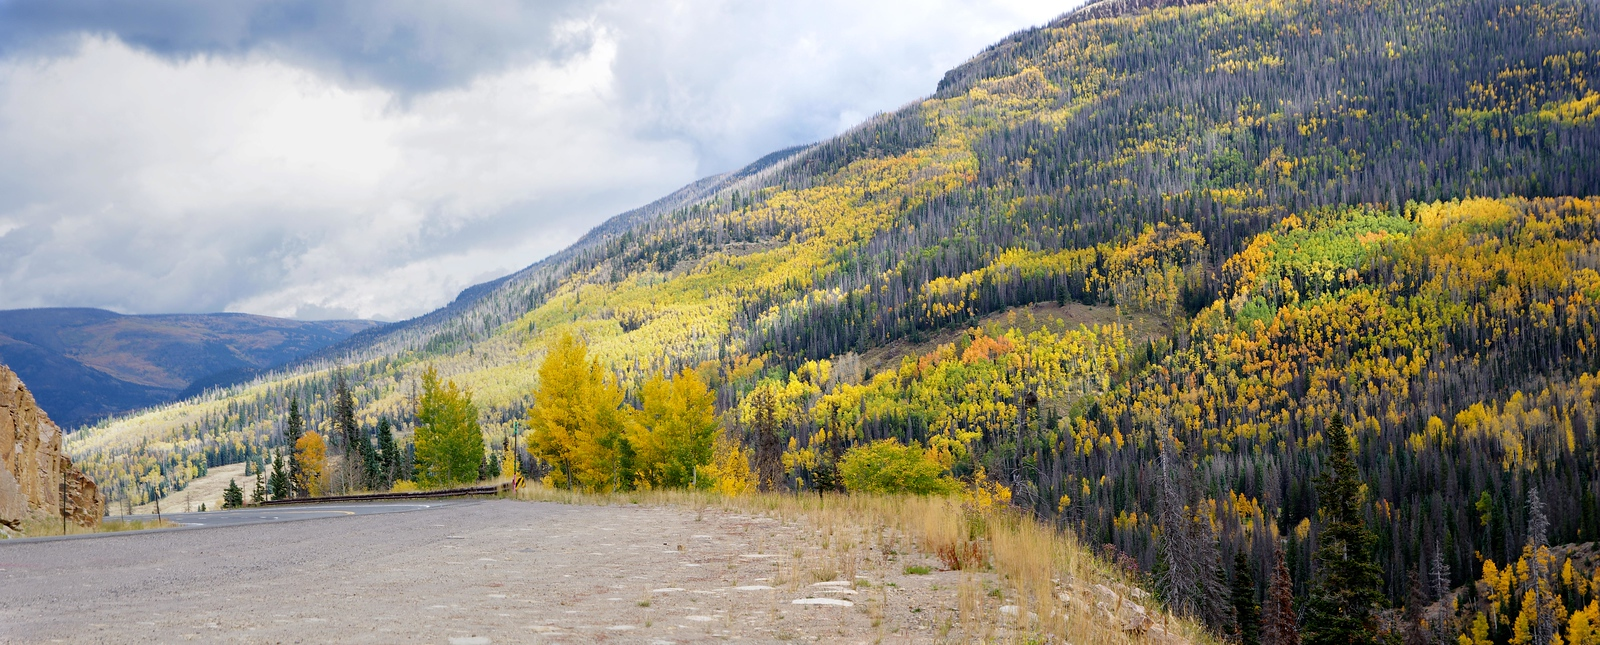 Hwy 40 - Steamboat